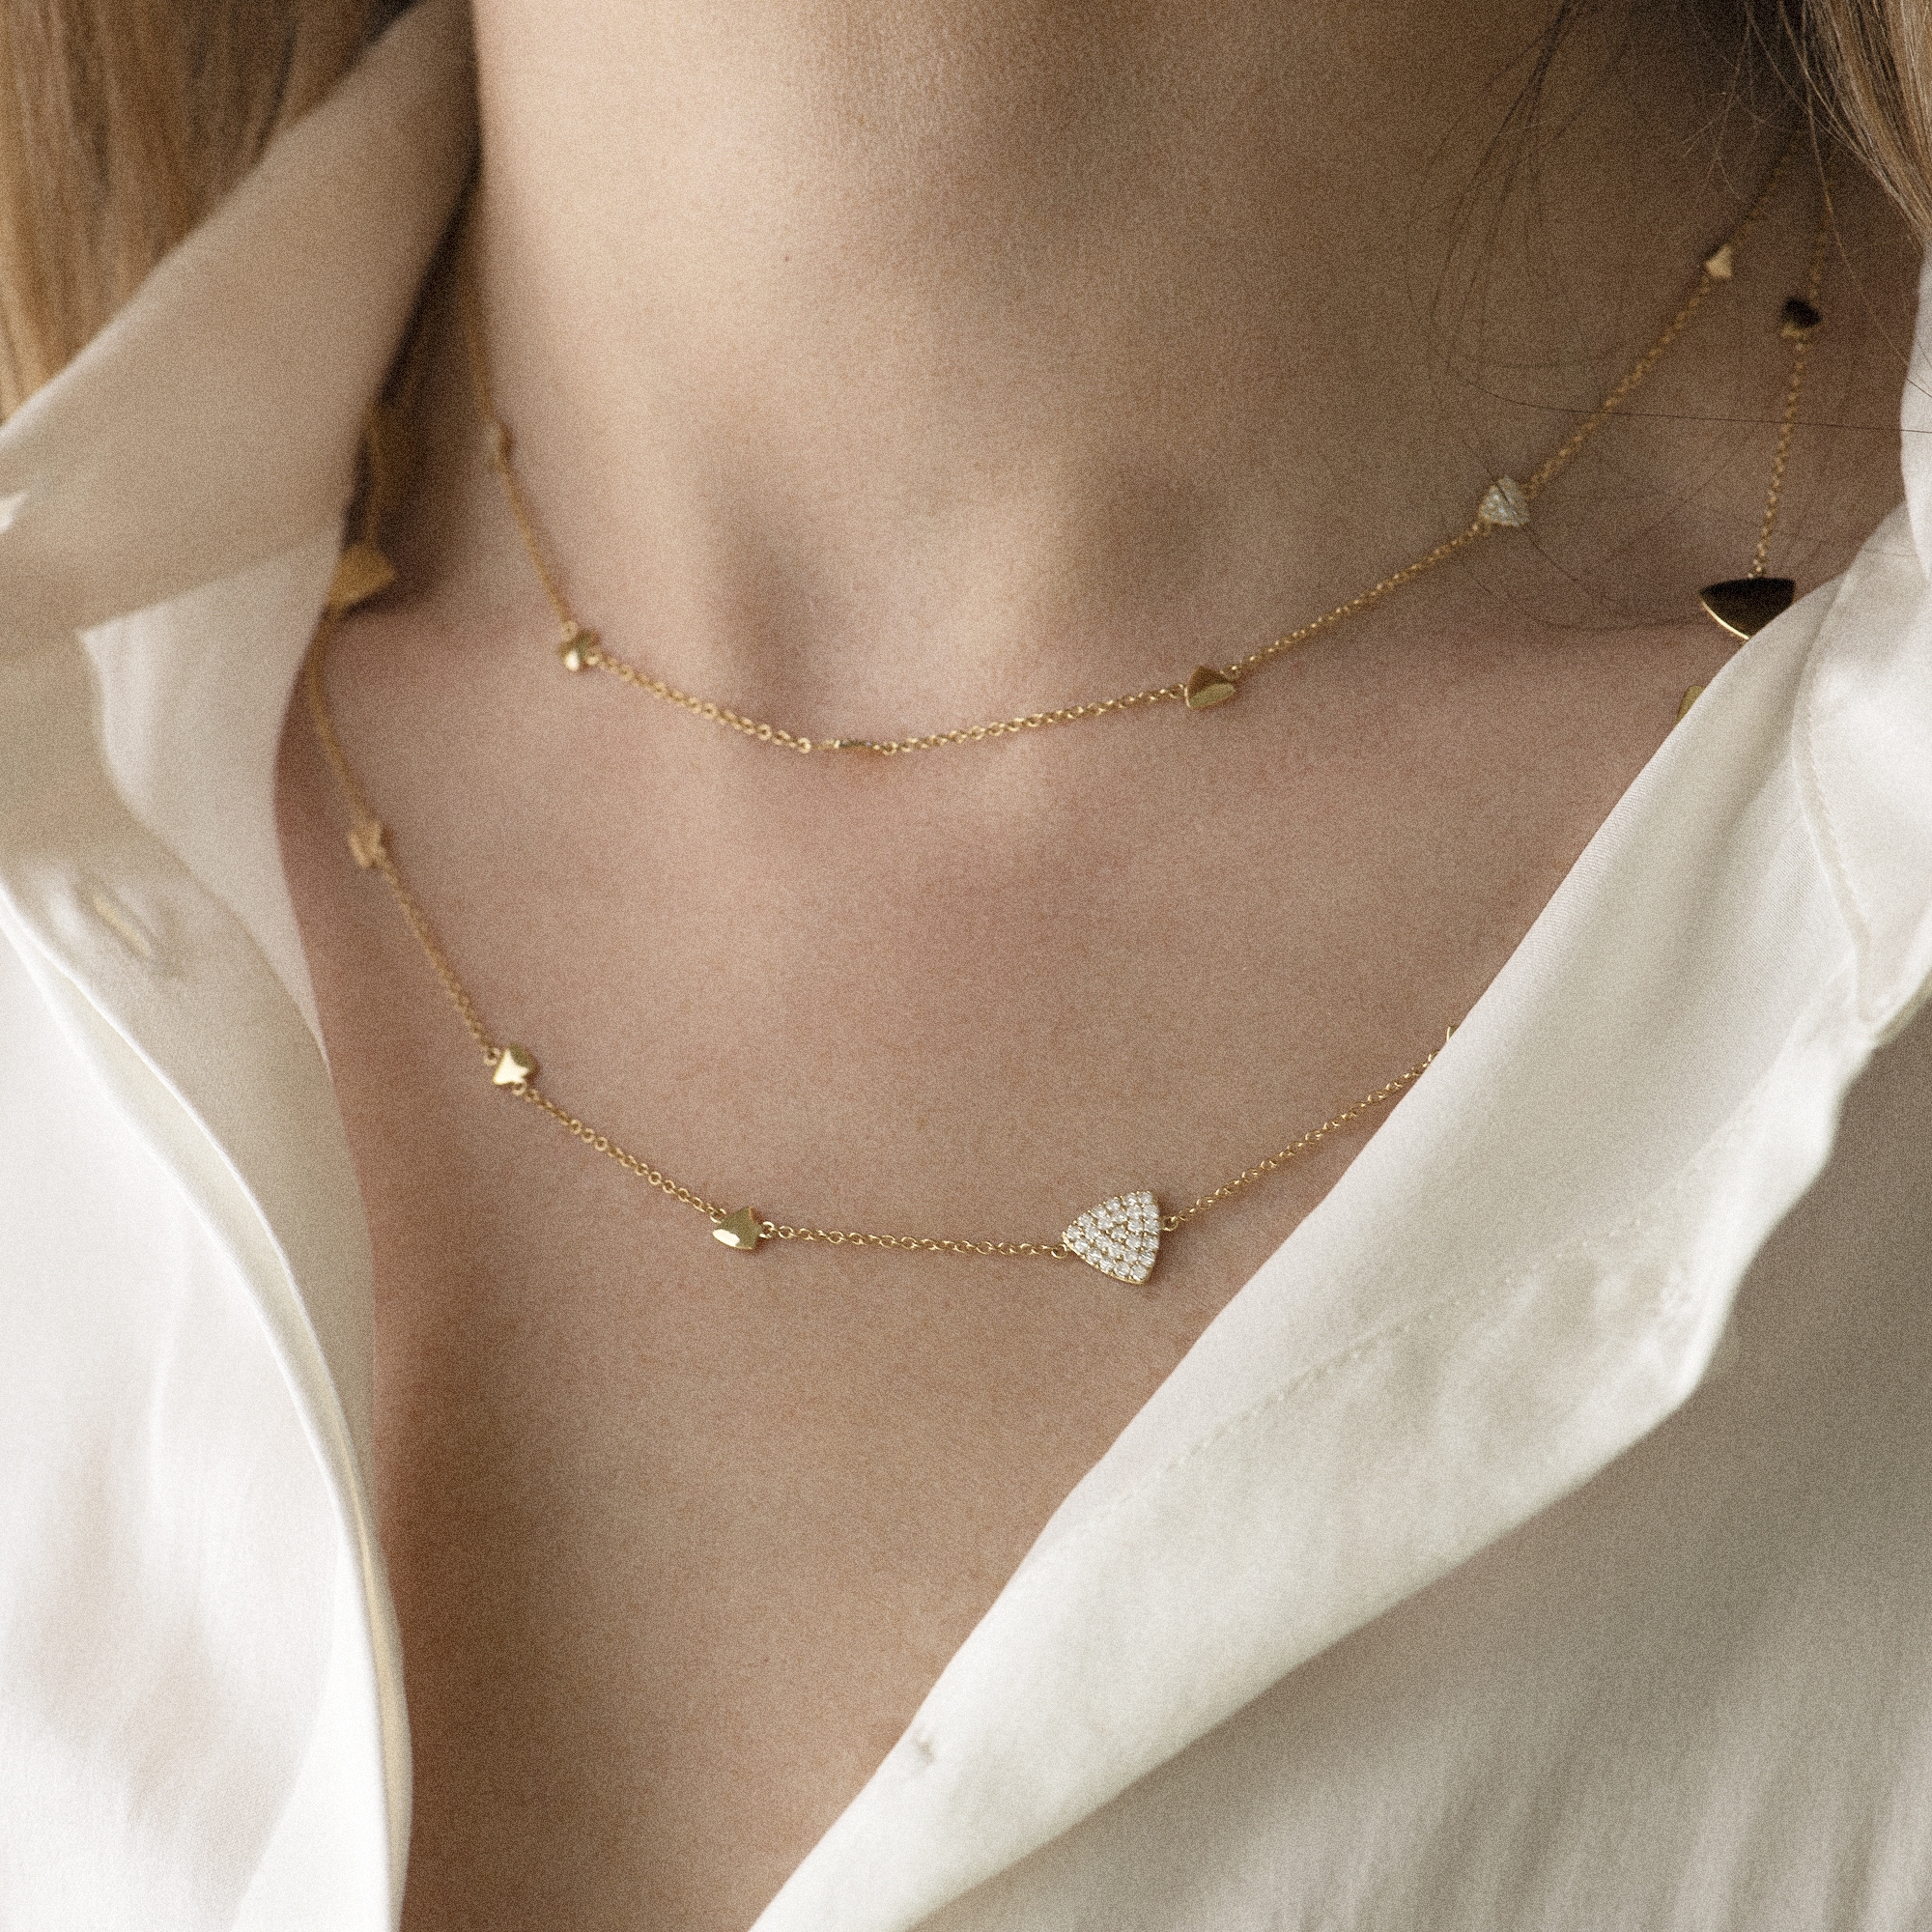 eolo necklace in white gold